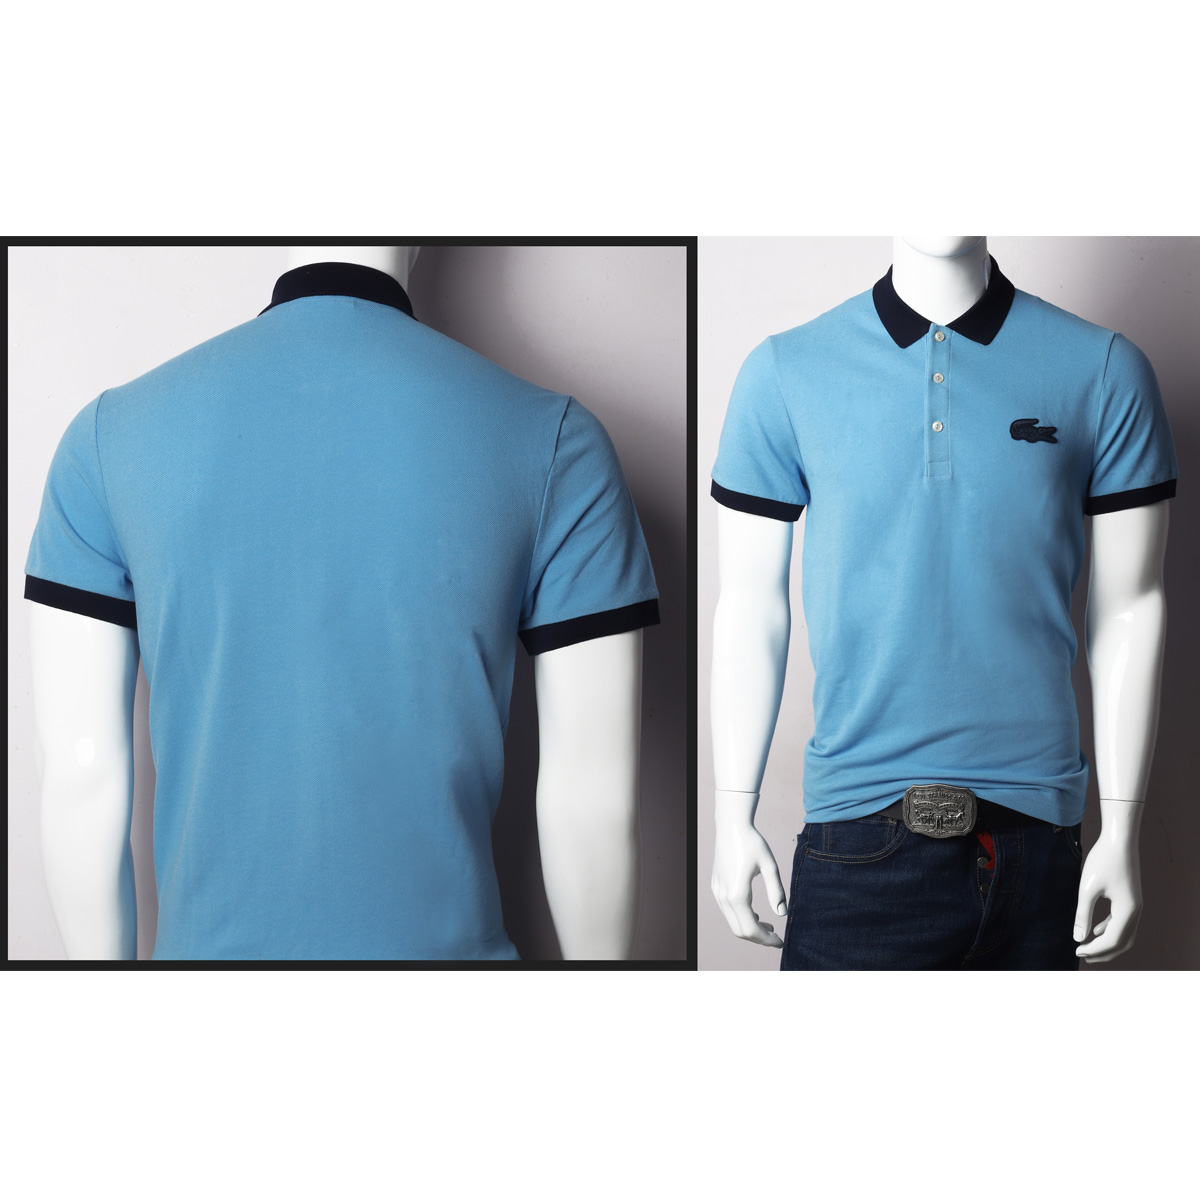 ao-polo-lacoste-regular-fit-161